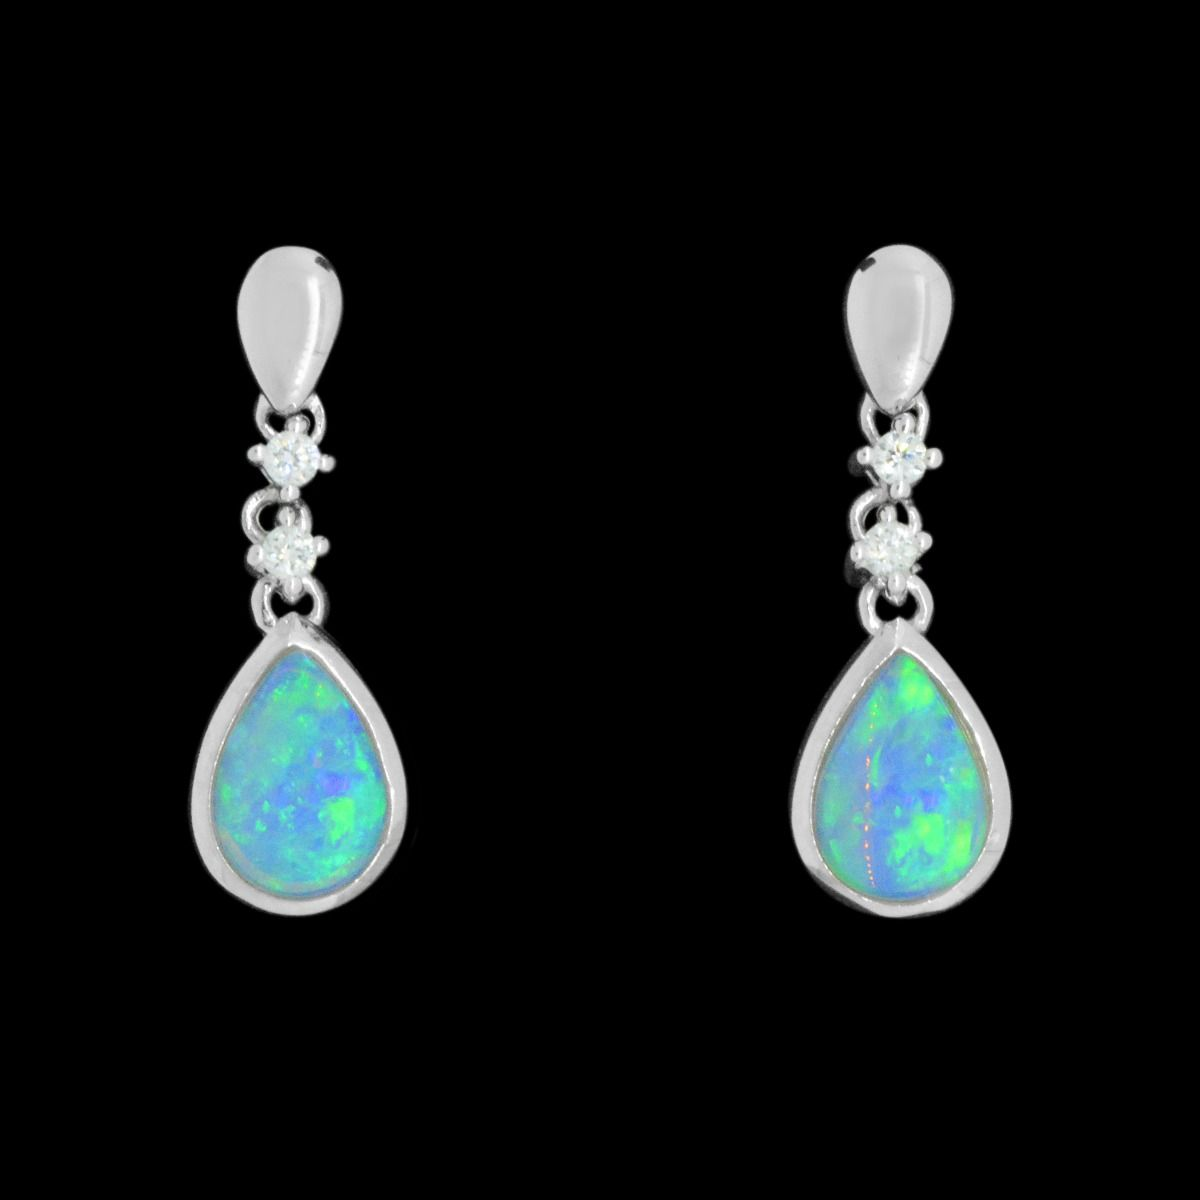 18ct White Gold Solid Opal Earrings Set with Diamonds